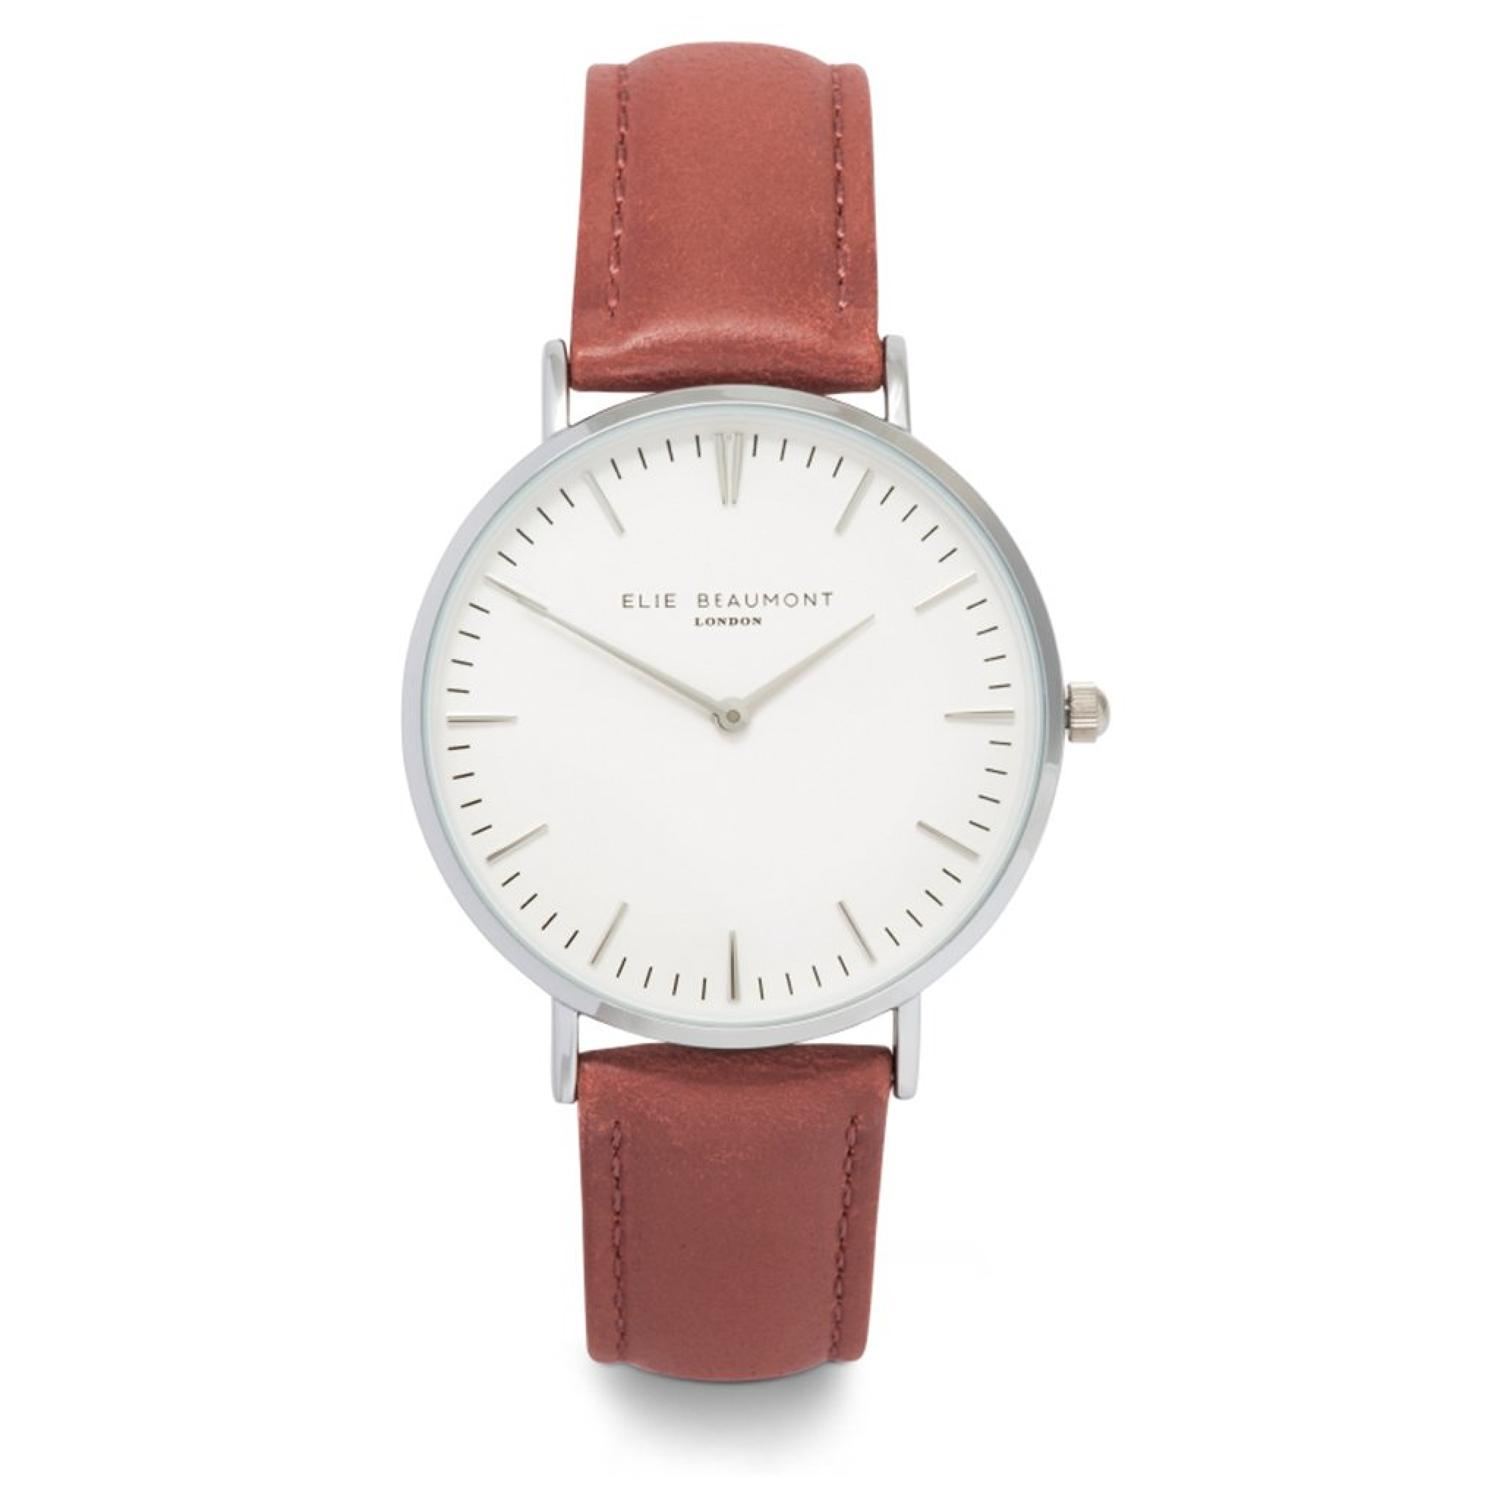 Elie Beaumont - Oxford large Blush Pink Ladies Watch